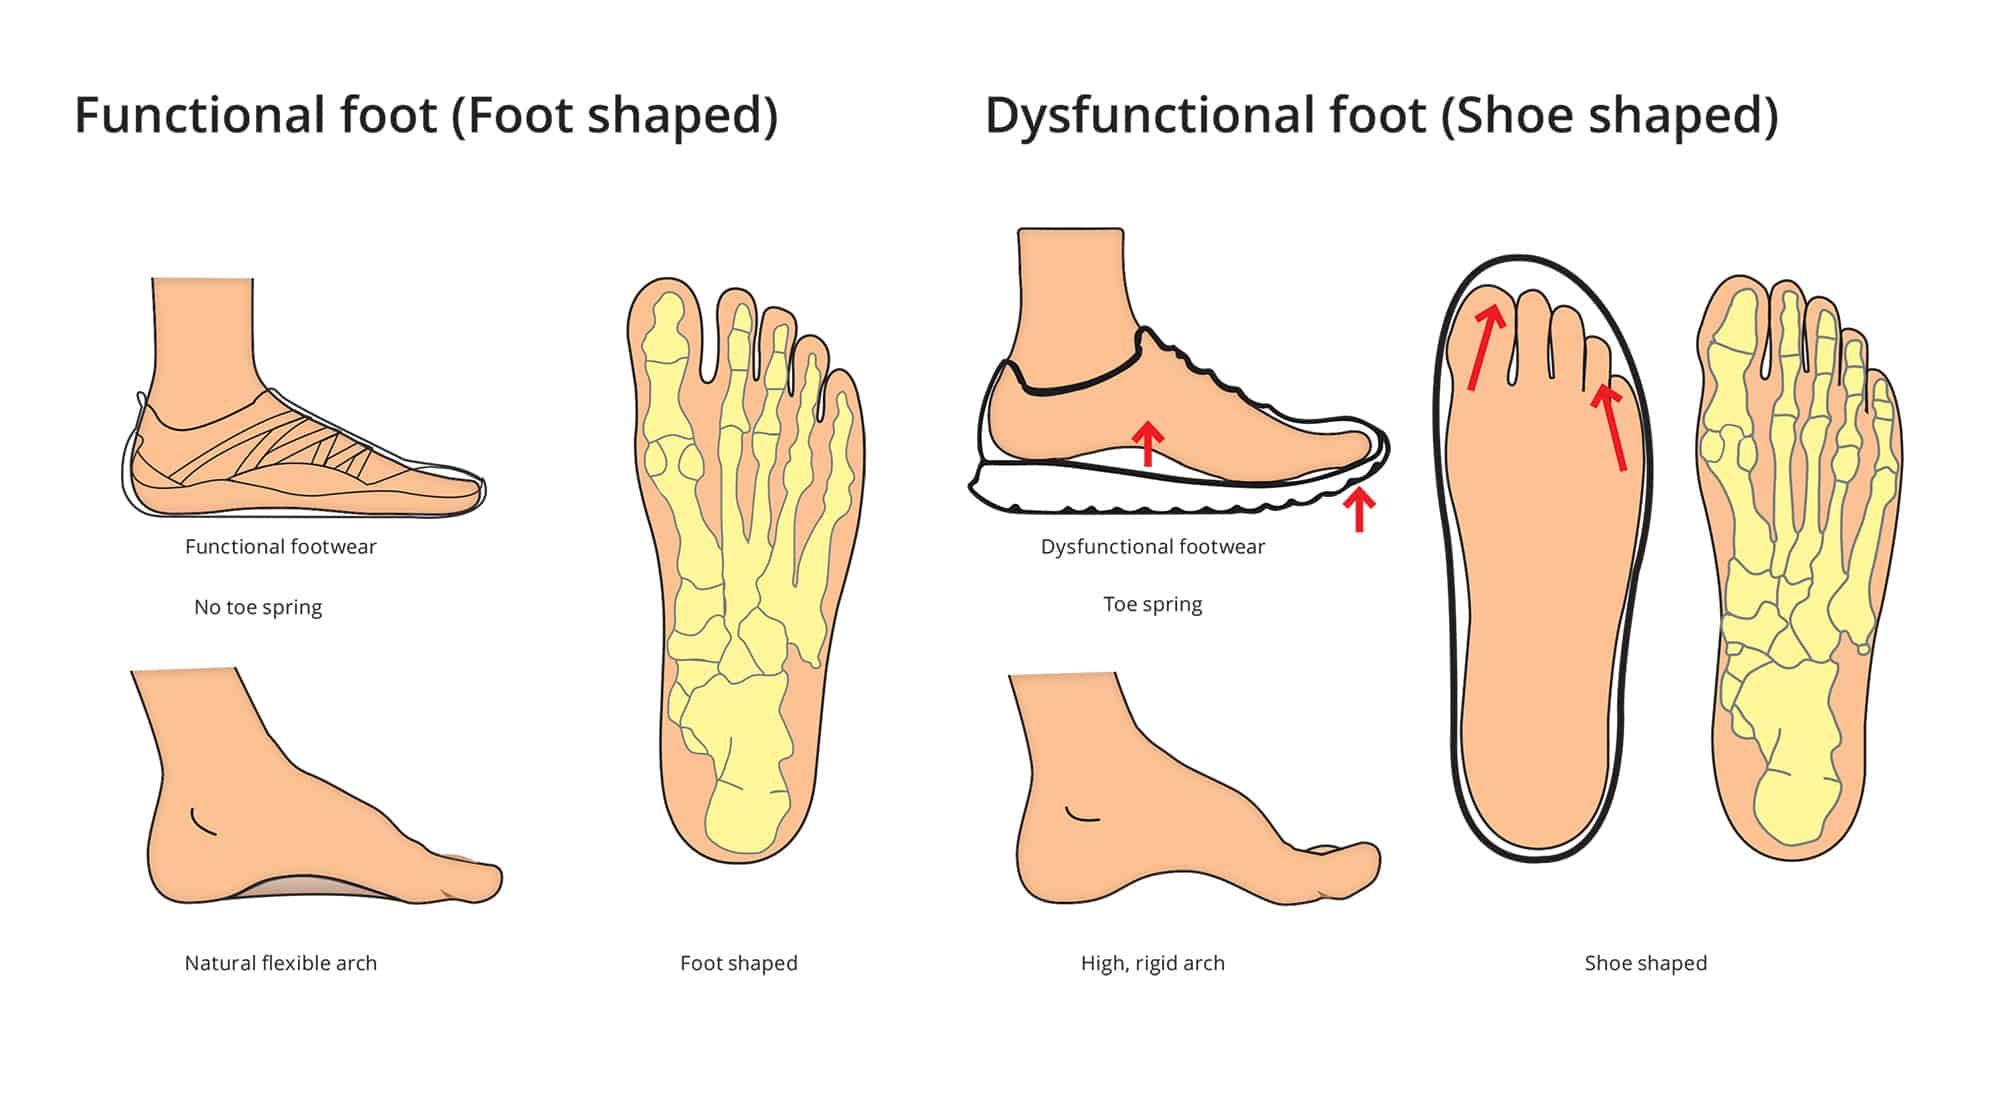 Shoe shape versus foot shape in functional footwear